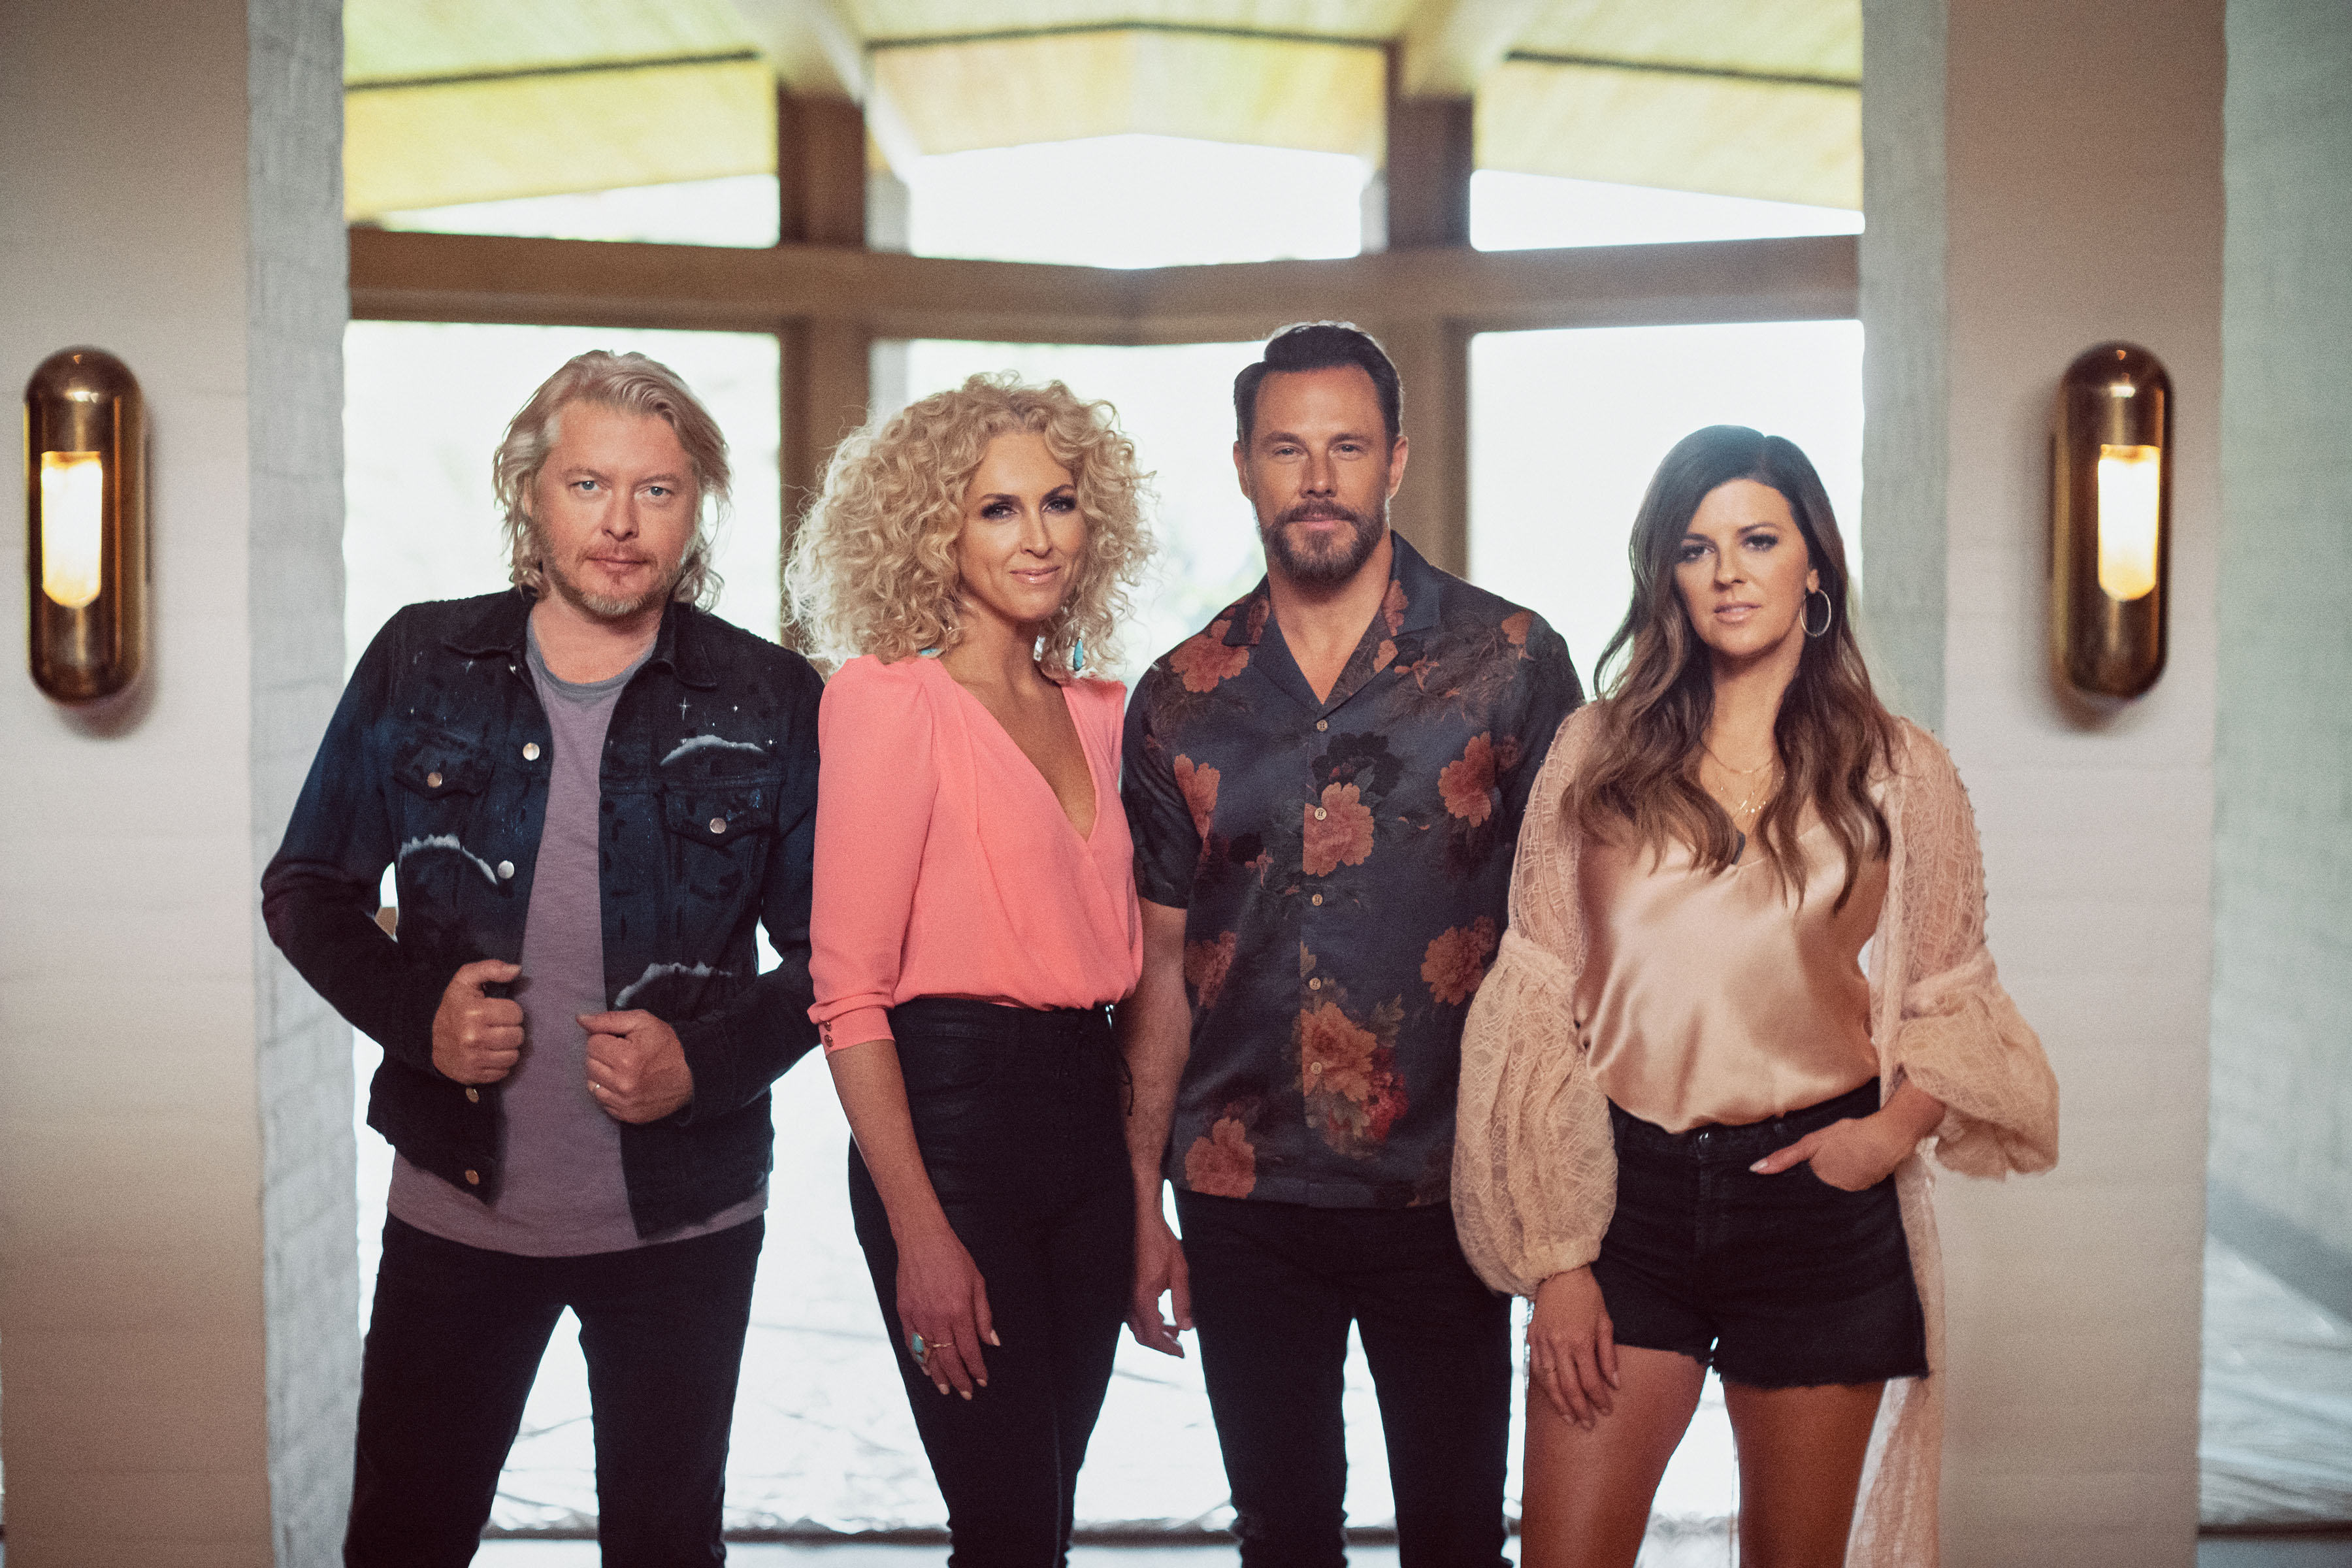 LITTLE BIG TOWN PERFORM AND PLAY ON THE KELLY CLARKSON SHOW.